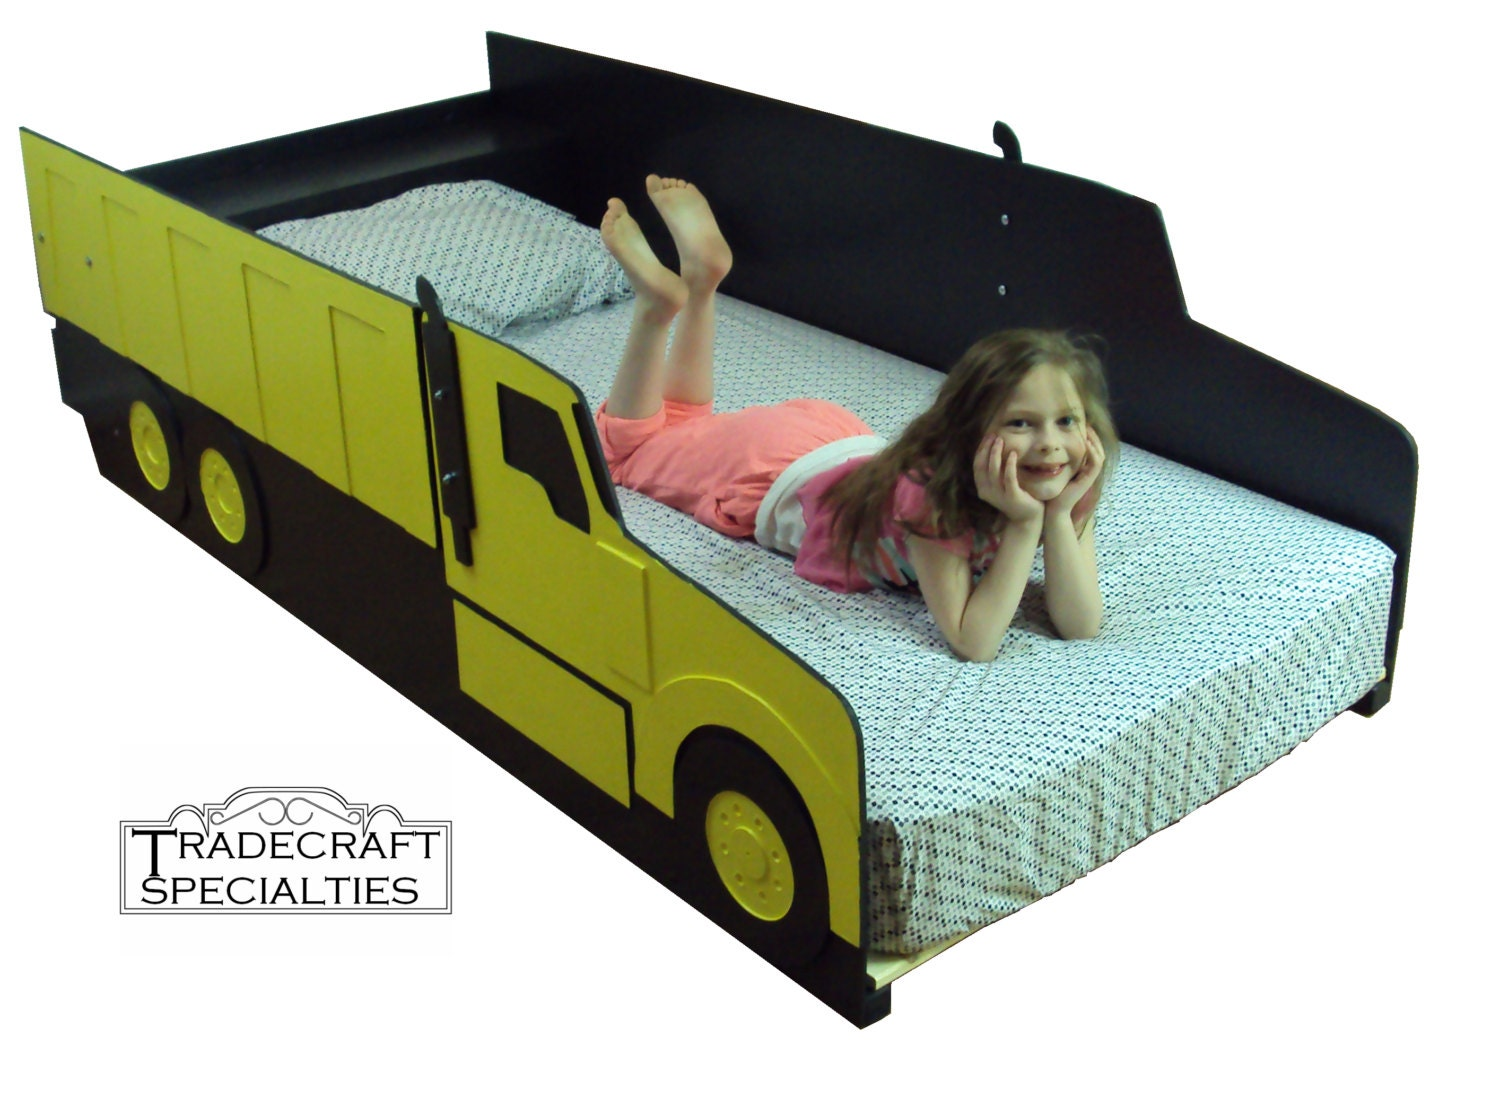 Dump Truck Toddler Bed : Dump truck twin kids bed frame handcrafted by tradecraftspec